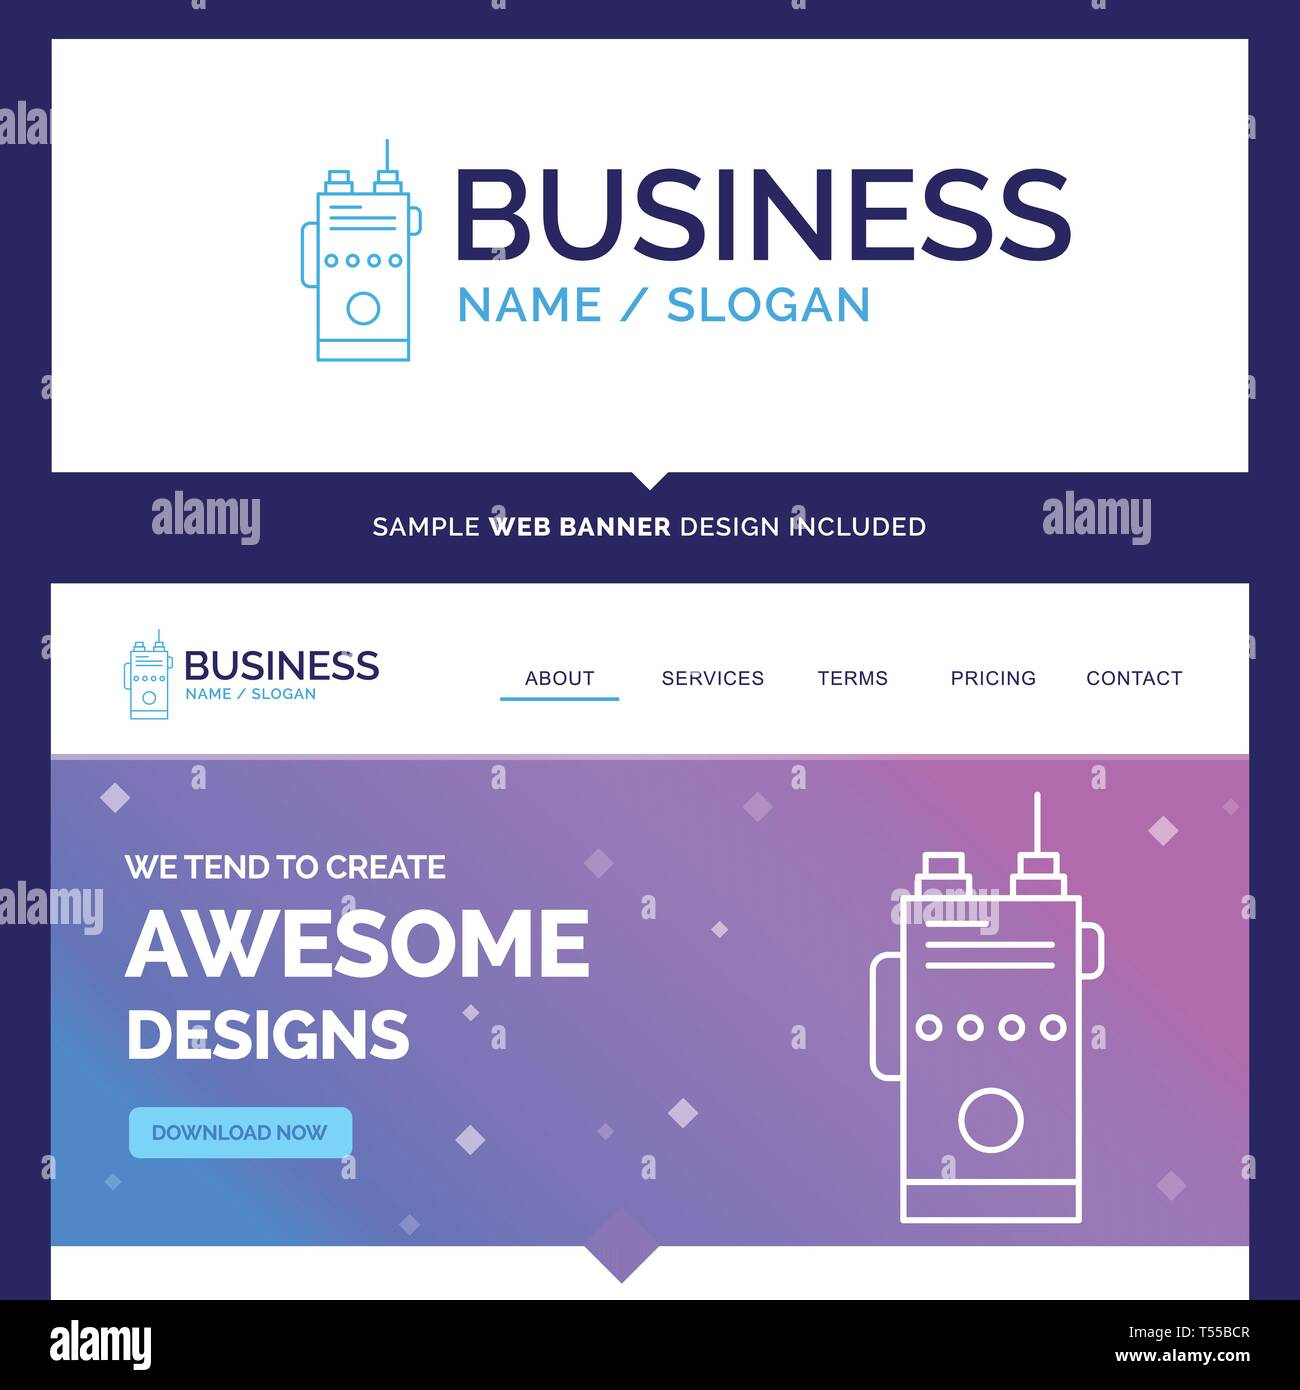 Beautiful Business Concept Brand Name Walkie Talkie Communication Radio Camping Logo Design And Pink And Blue Background Website Header Design Tem Stock Vector Art Illustration Vector Image 244137175 Alamy